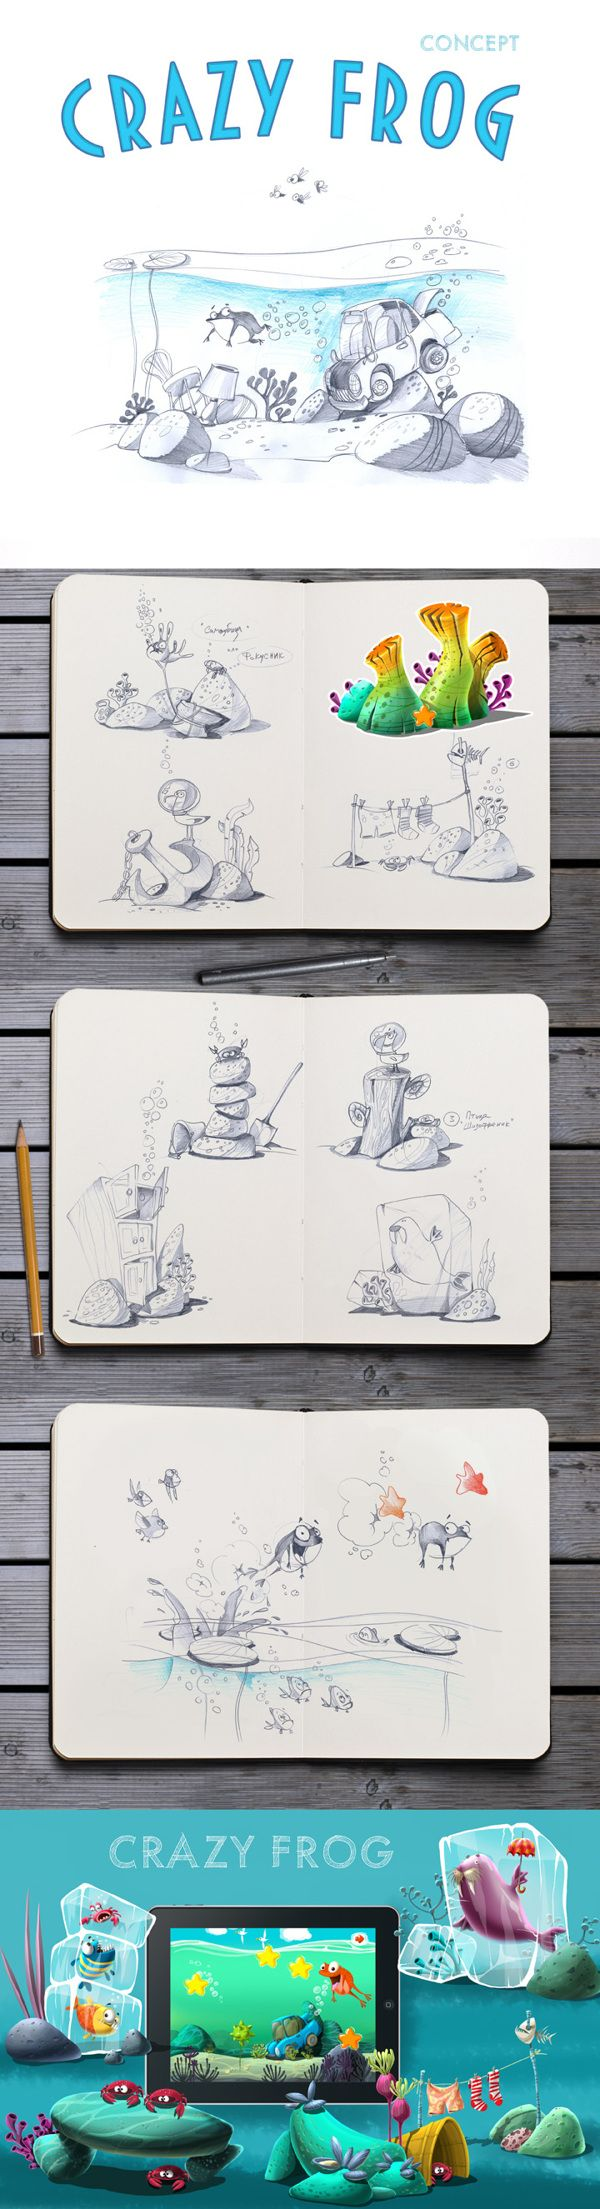 Crazy Frog: Concept by Just Games, via Behance